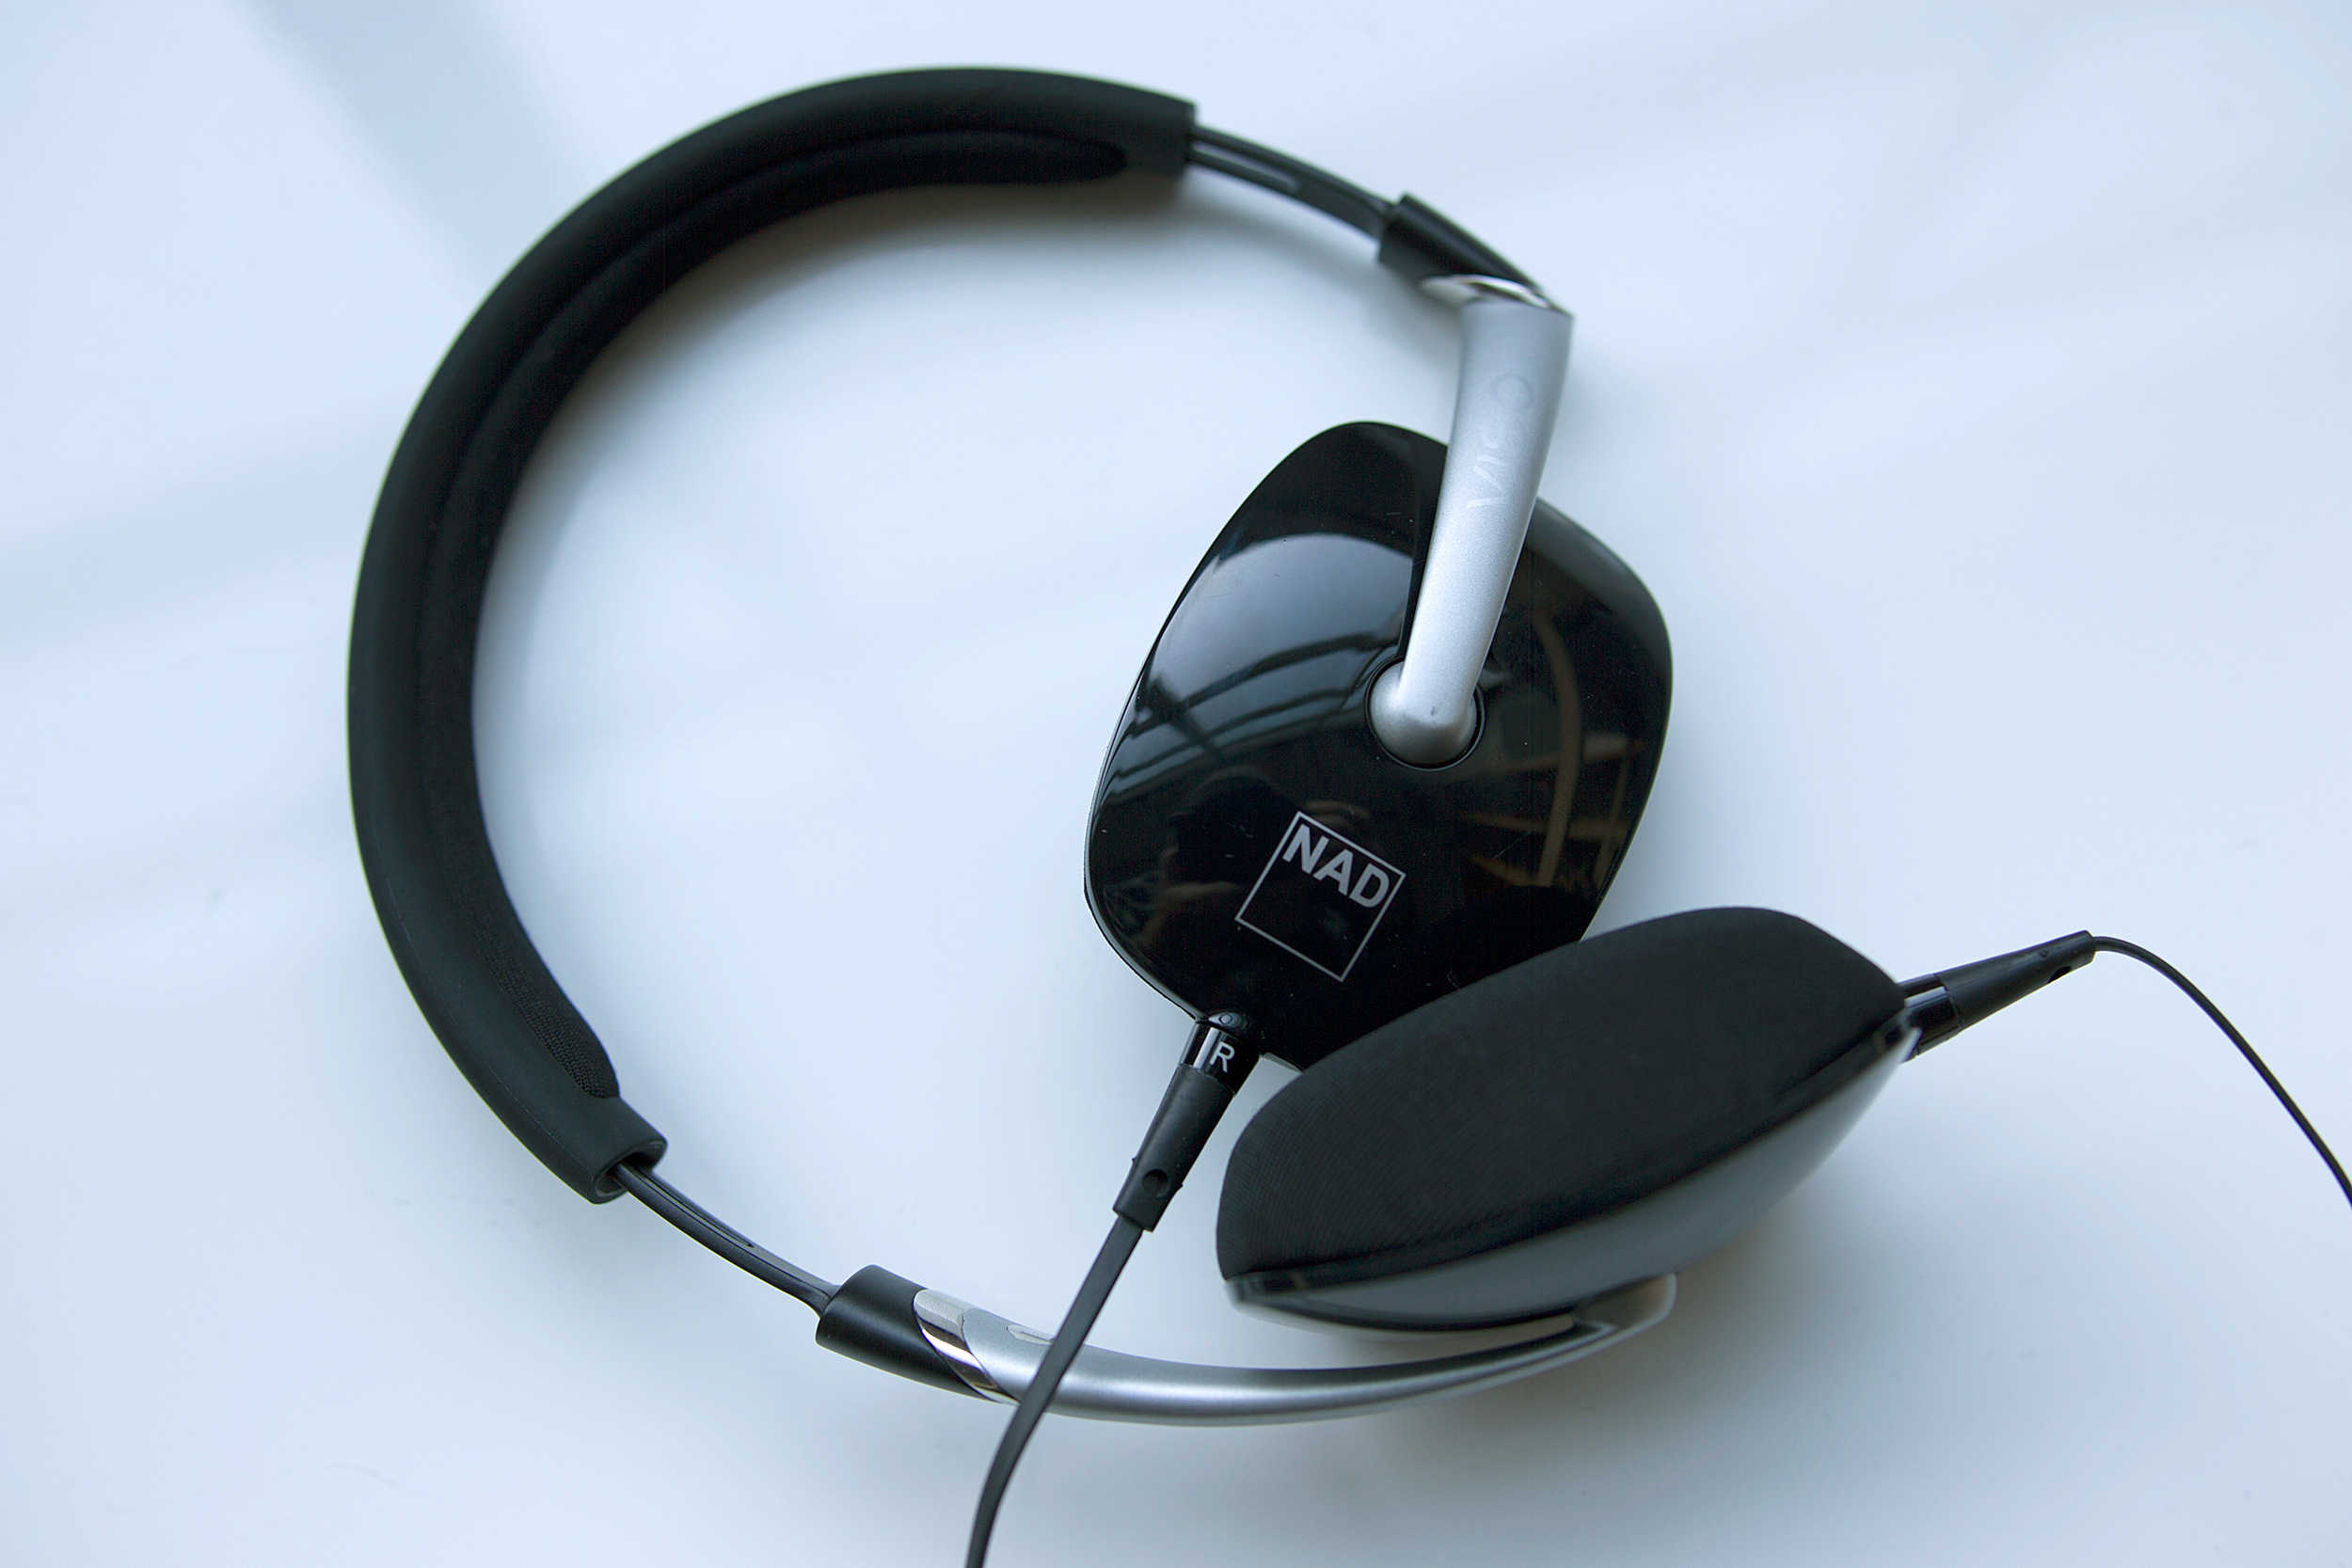 NAD VISO HP30 on-ear headphones offer RoomFeel technology.